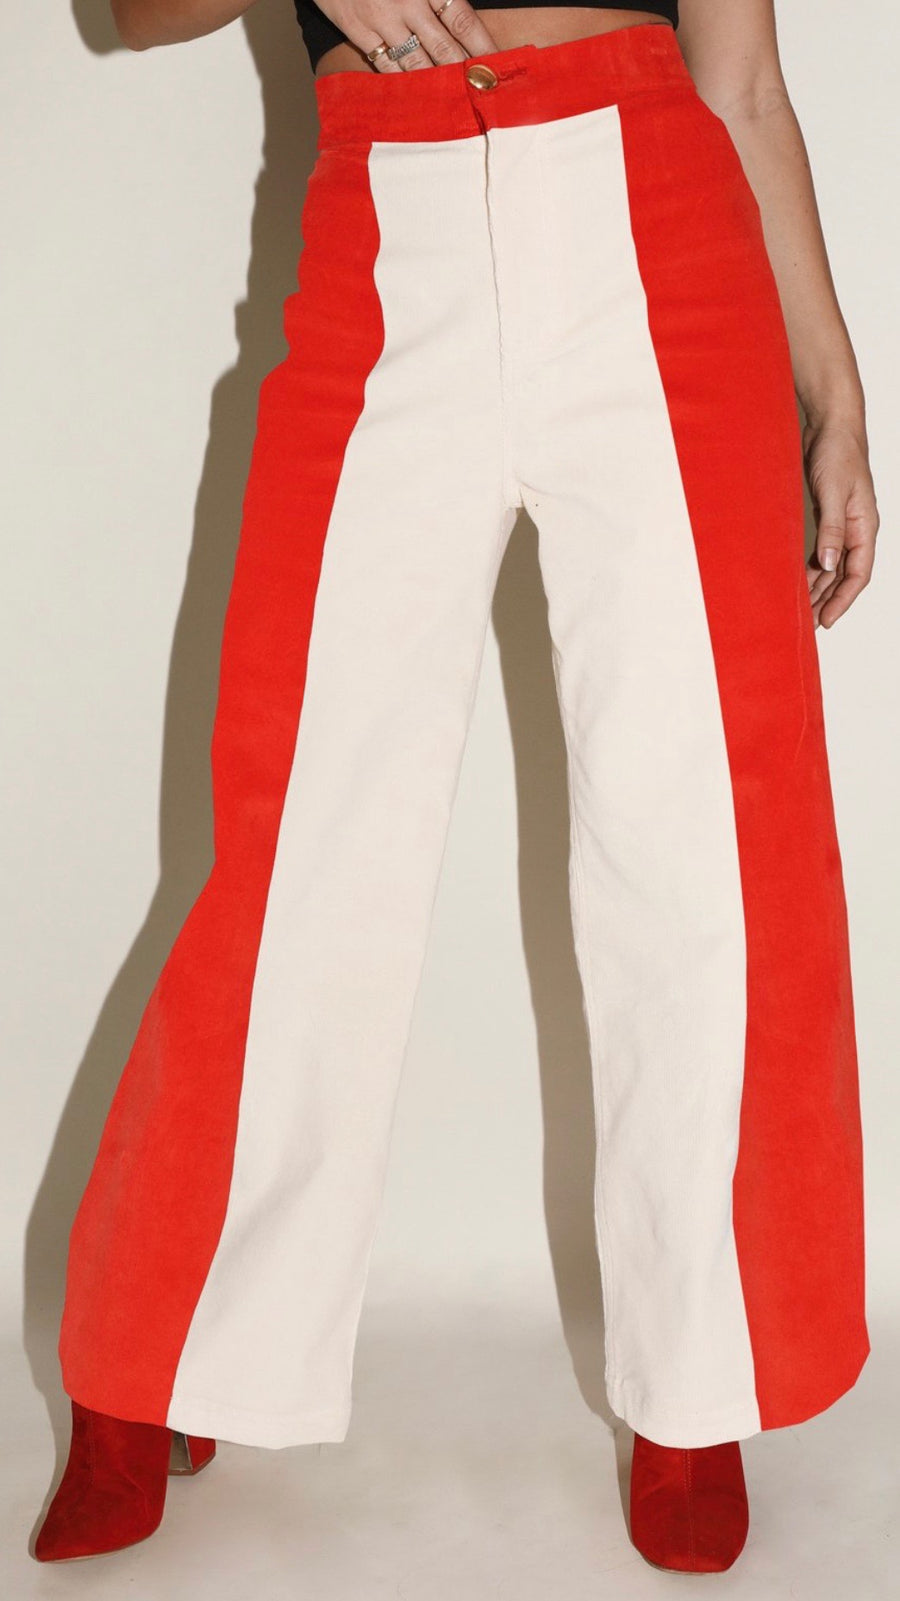 Sugarhigh Lovestoned Woody Wide Leg Pant in Red & Cream Paneled Stretch Corduroy